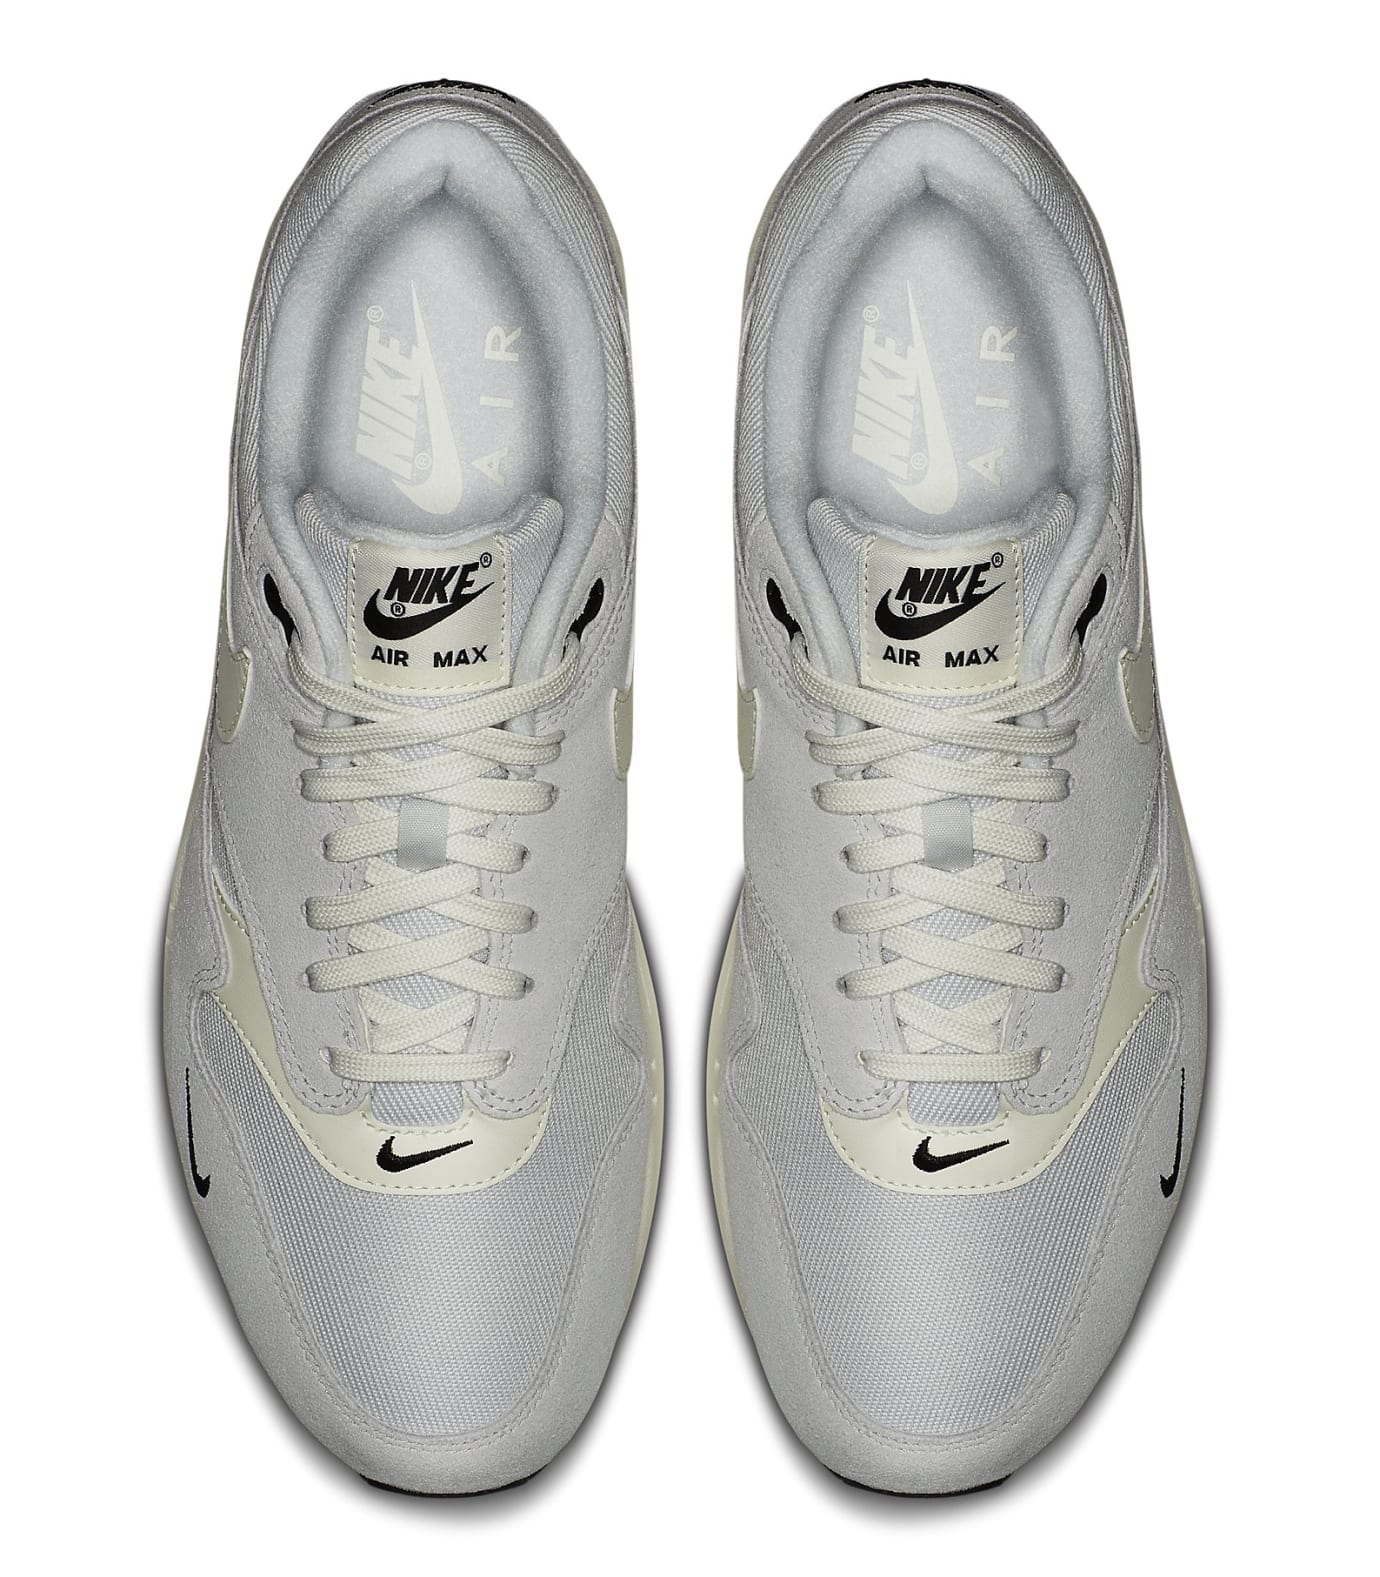 e9f326643cb120 Nike Air Max 1 Mini Swoosh  Pure Platinum  Release Date July 12 ...